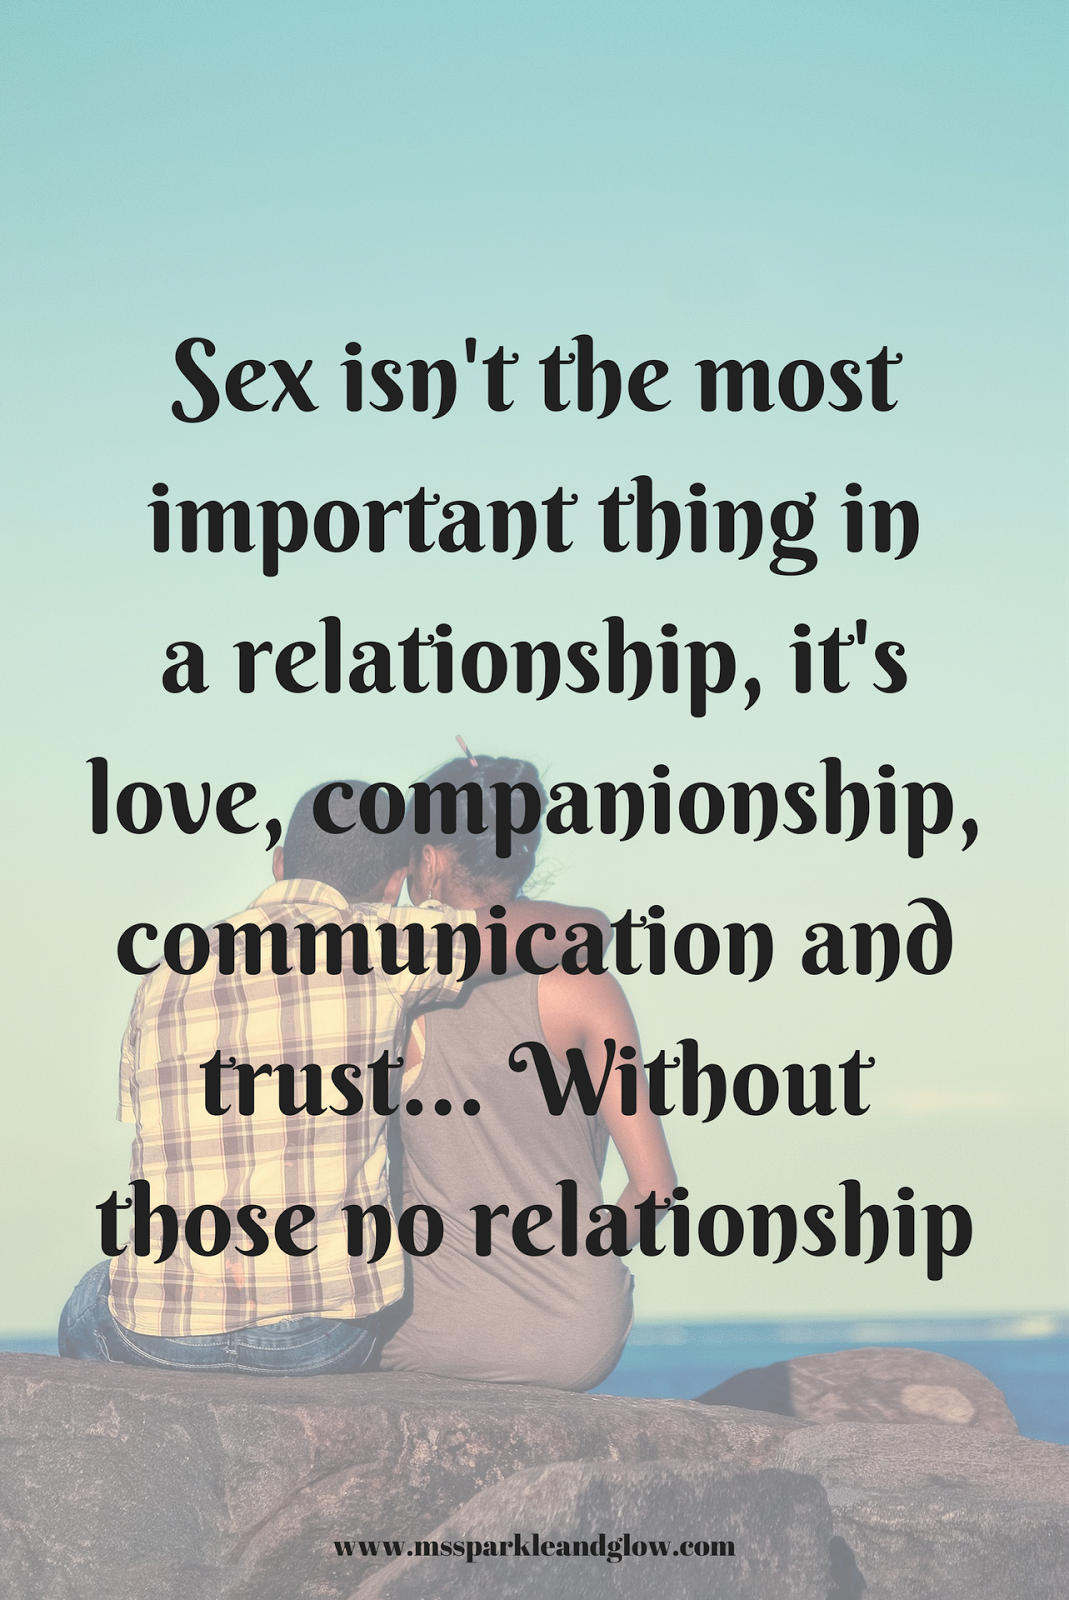 Is sex most important thing in a relationship